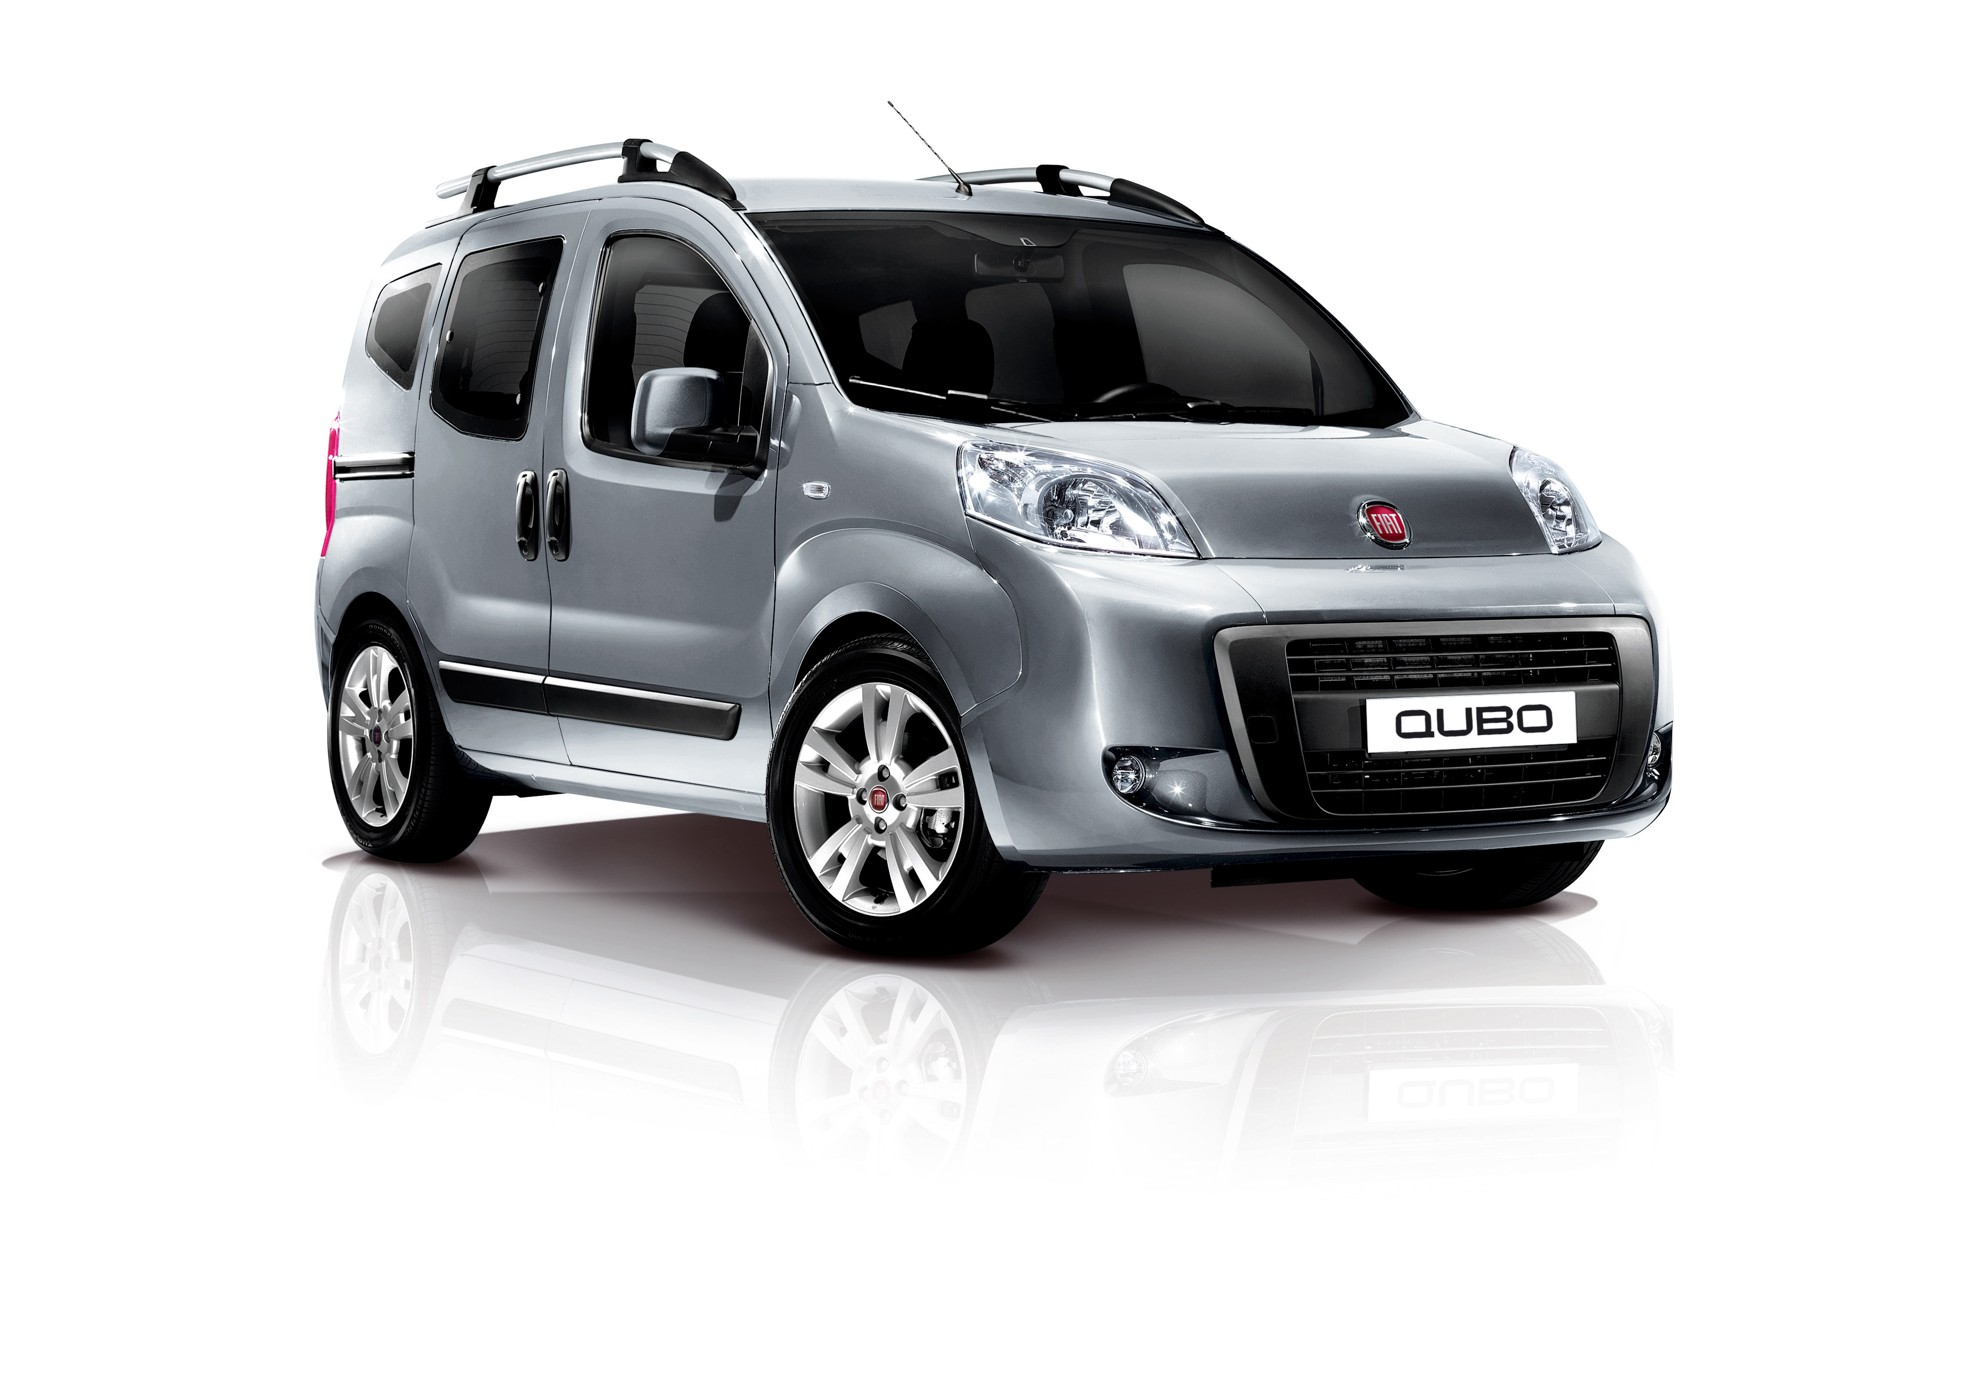 Fiat Qubo South Africa